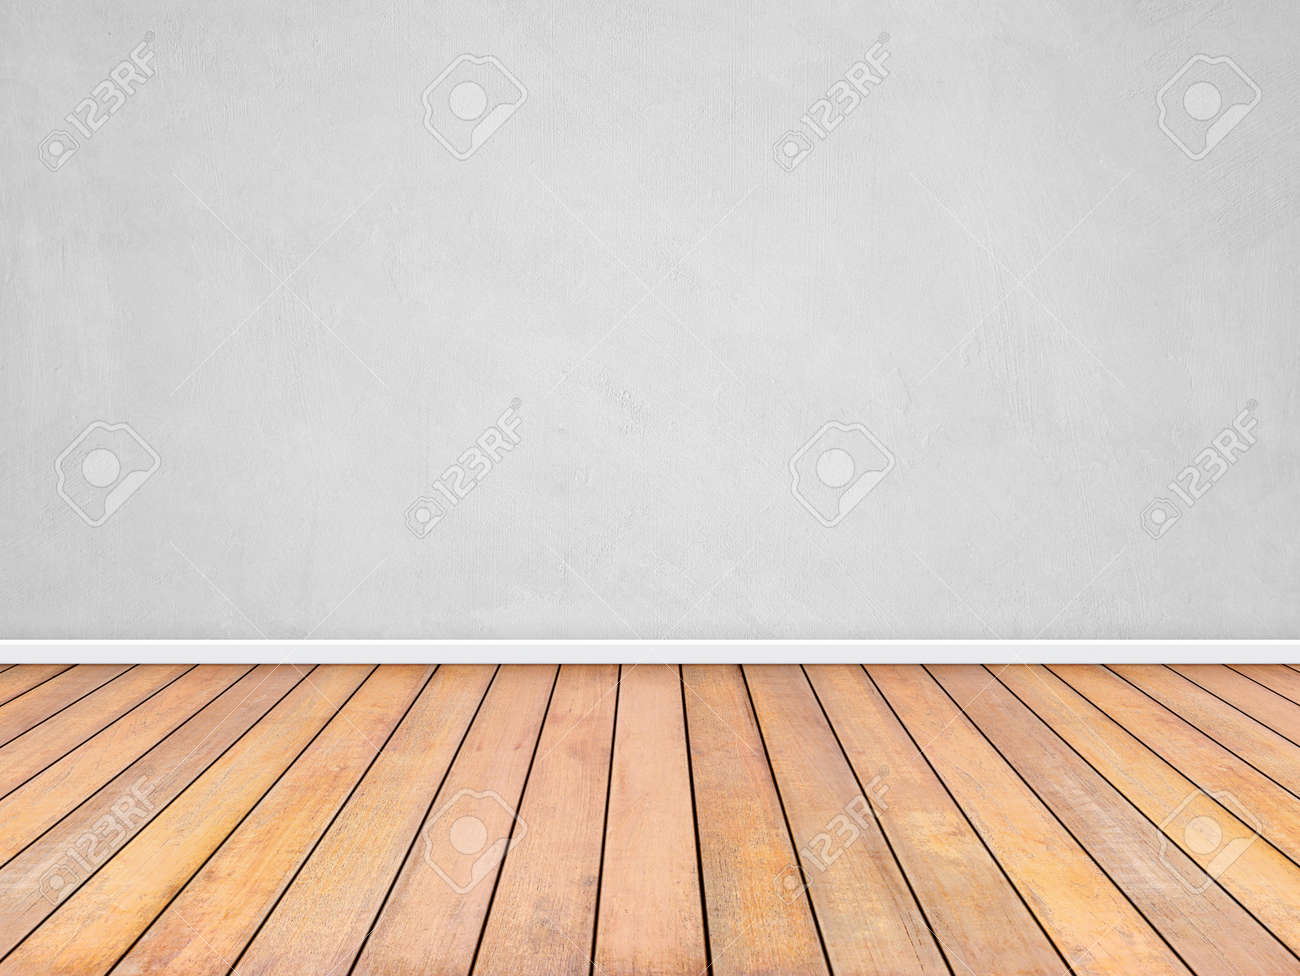 Room interior vintage with white wall and wood floor background - 165027133